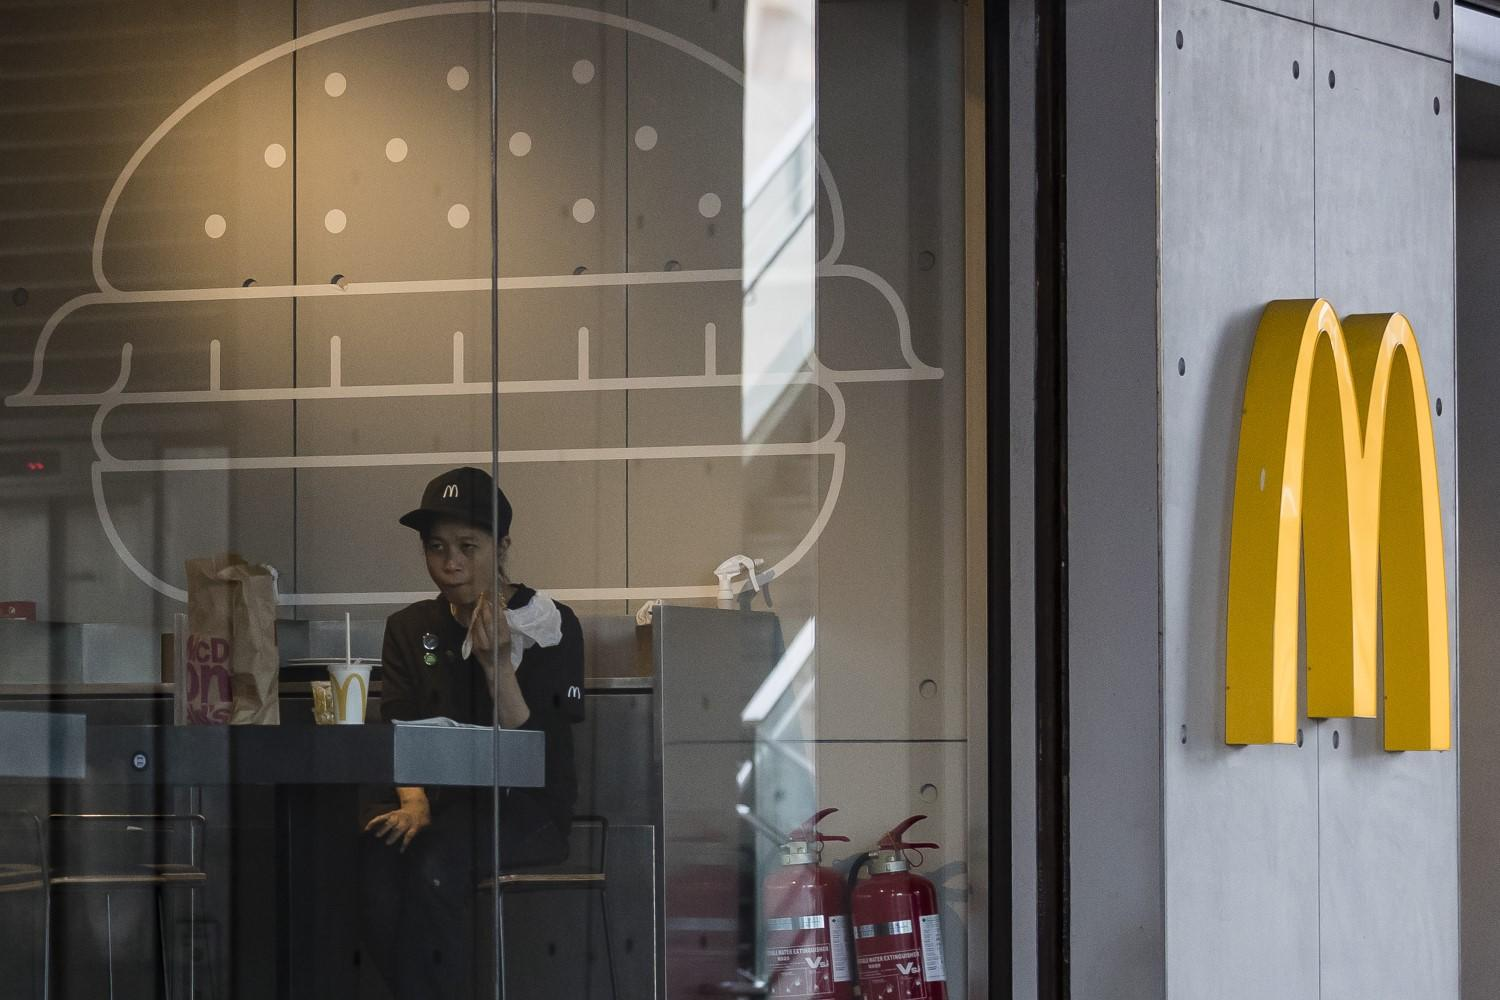 VeChain to Supply Blockchain Tech for Chinese Food Safety Group That Includes McDonald's